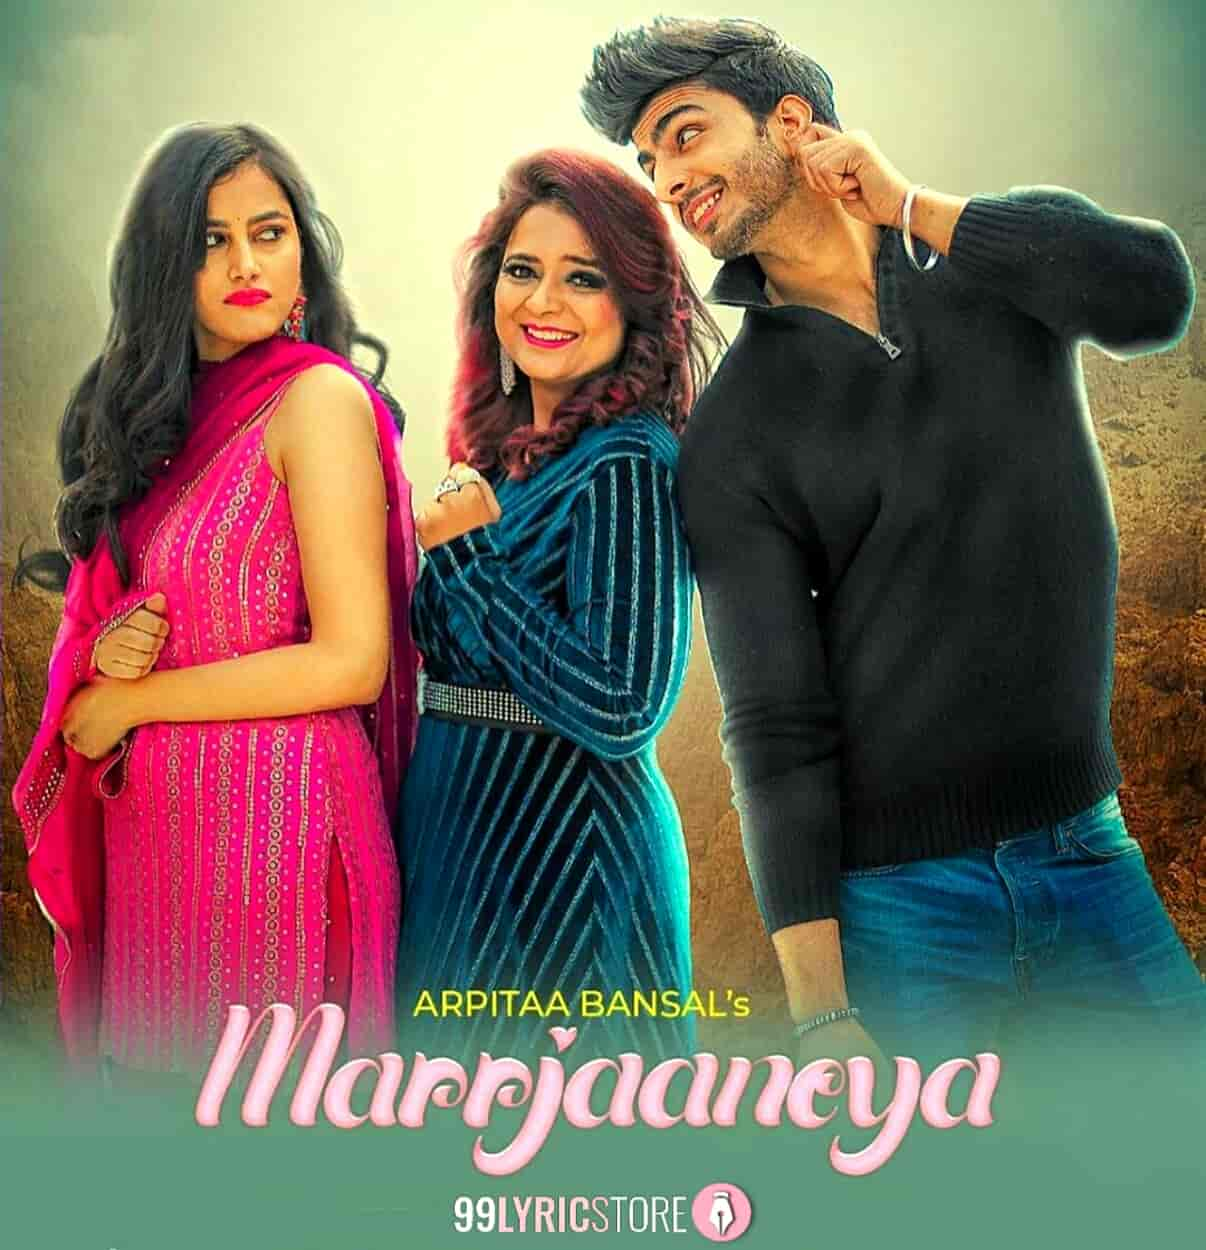 Marrjaaneya Song Images By Arpitaa Bansal